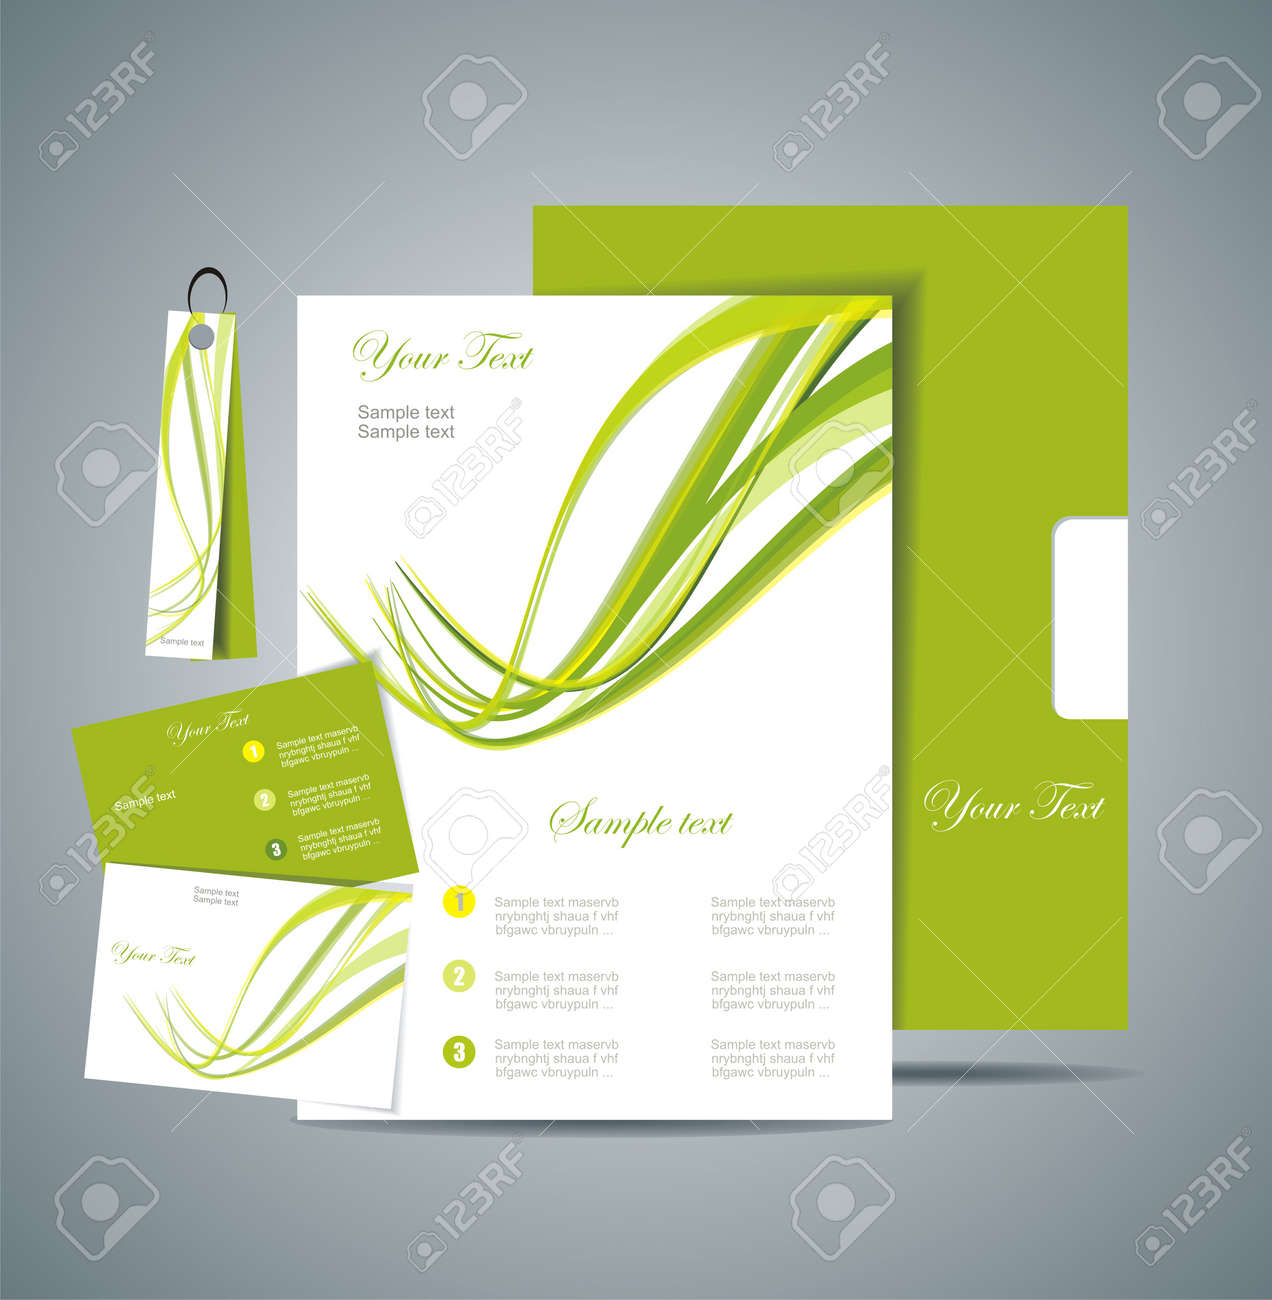 Corporate Identity Template Stock Vector - 14473148